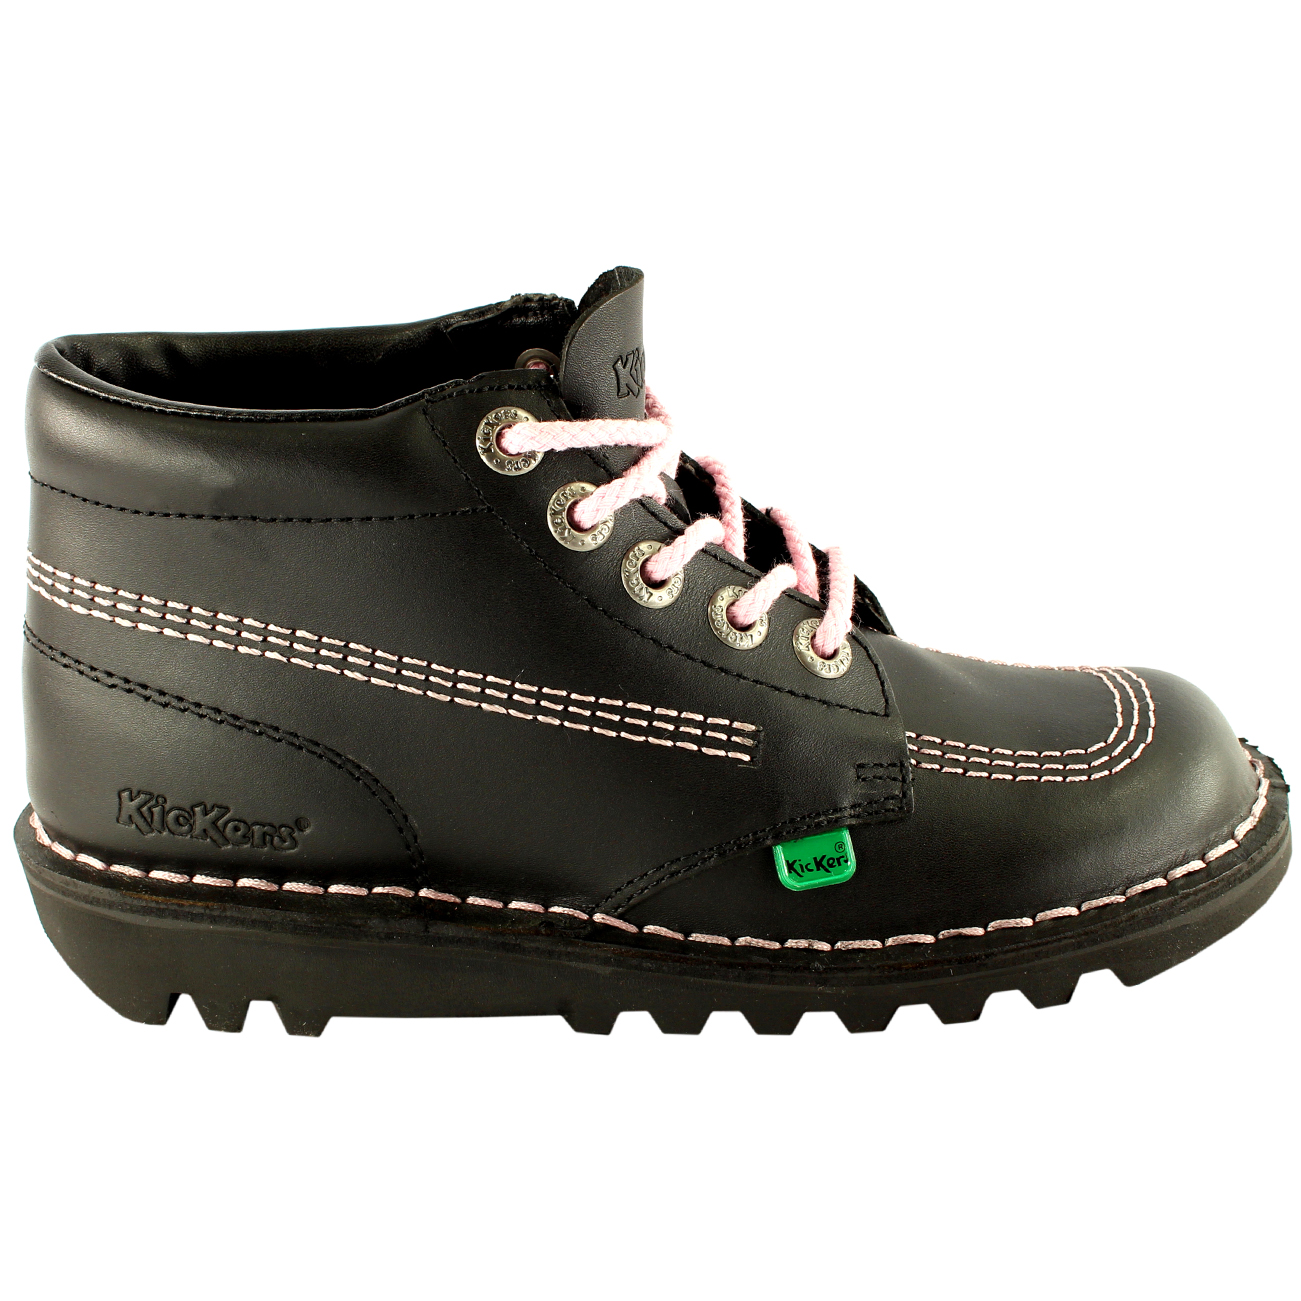 Unisex Kids Youth Kickers Kick Hi Back To School Leather ...